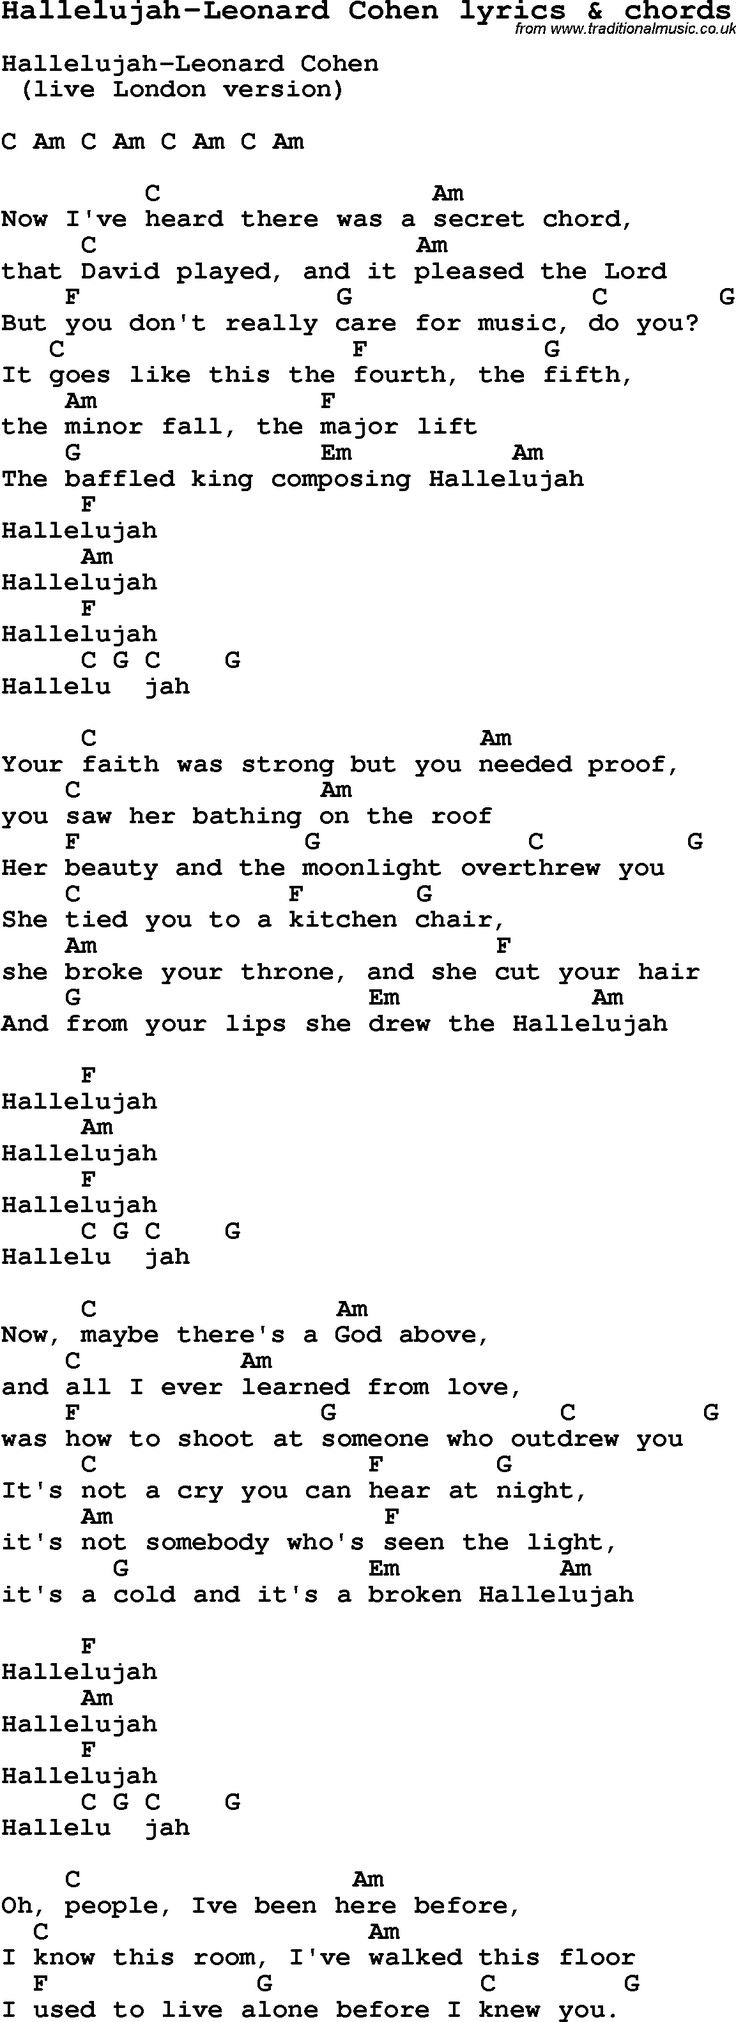 136 best can you hear the music images on pinterest music cool love song lyrics for hallelujah leonard cohen with chords for ukulele guitar banjo hexwebz Gallery